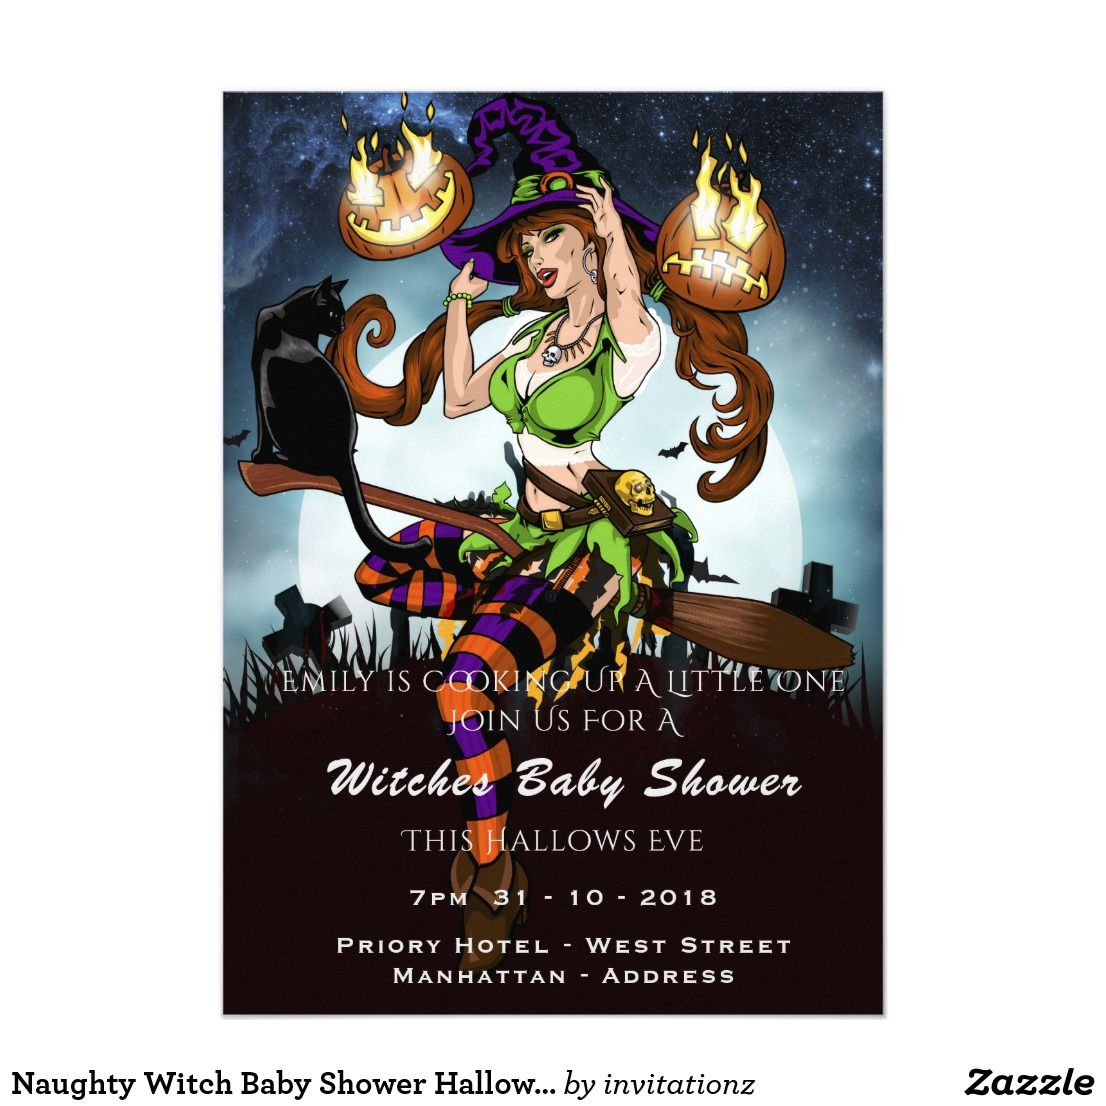 Naughty witch baby shower halloween party invite baby shower naughty witch baby shower halloween party invite monicamarmolfo Image collections